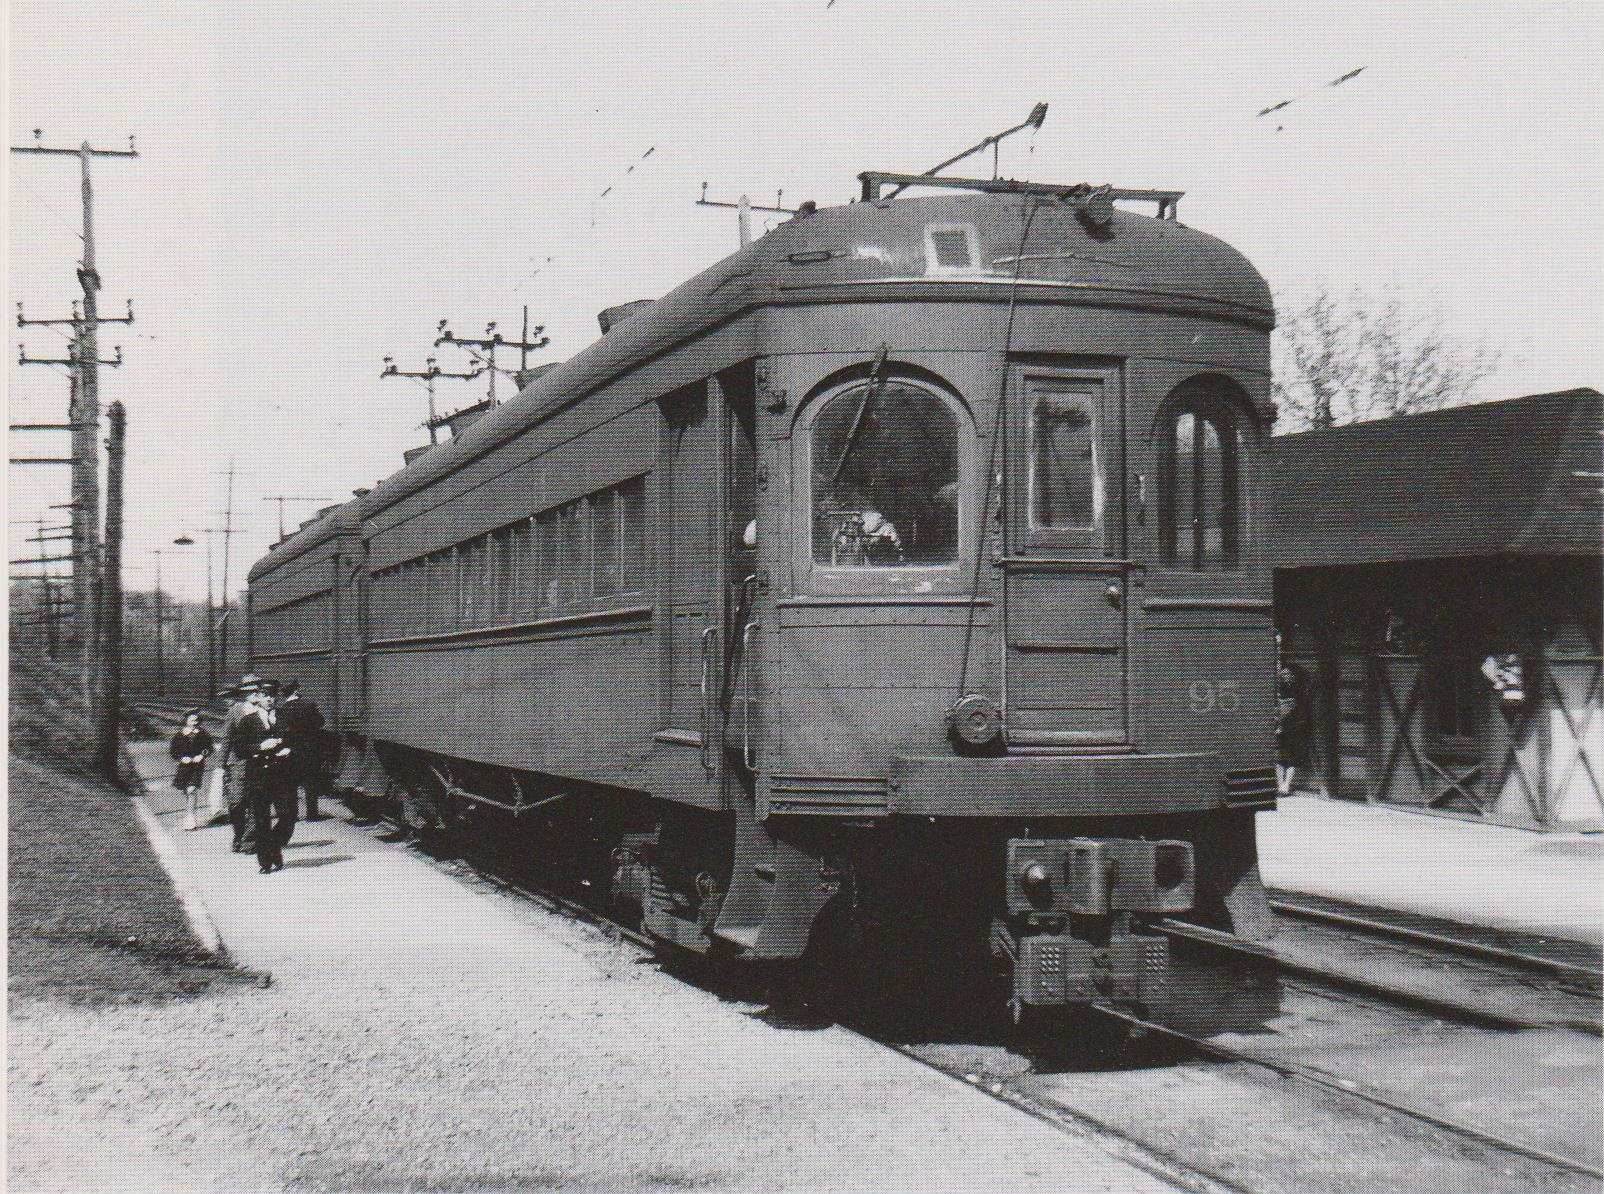 """Baltimore & Annapolis Car #95 at Linthicum Station. Linthicum, Maryland Date: 1946. Source: W.D. Middleton from """"Baltimore Light Rail, Then & Now"""" by Herbert H. Harwood Jr."""